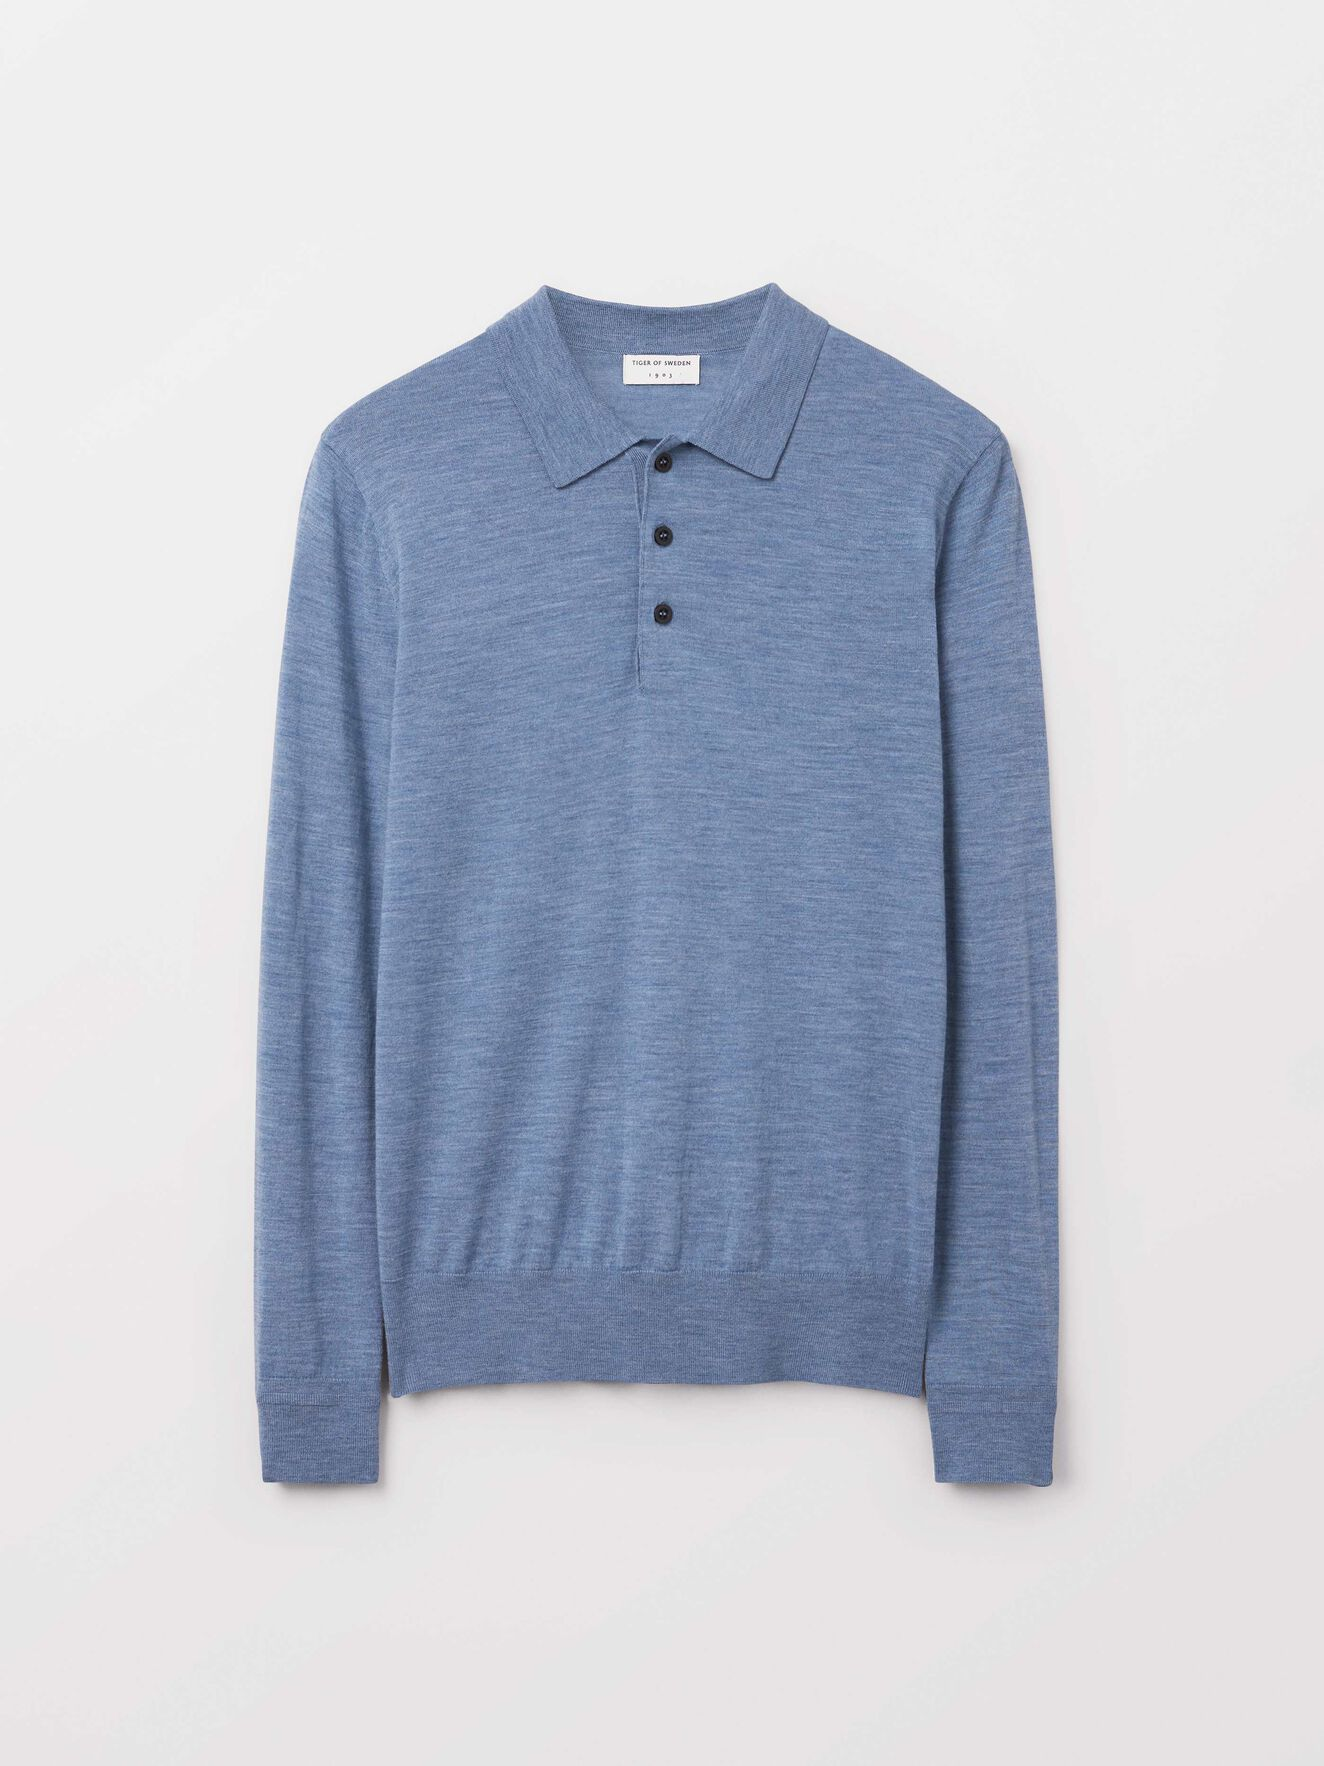 Newton Pullover in Soft blue from Tiger of Sweden